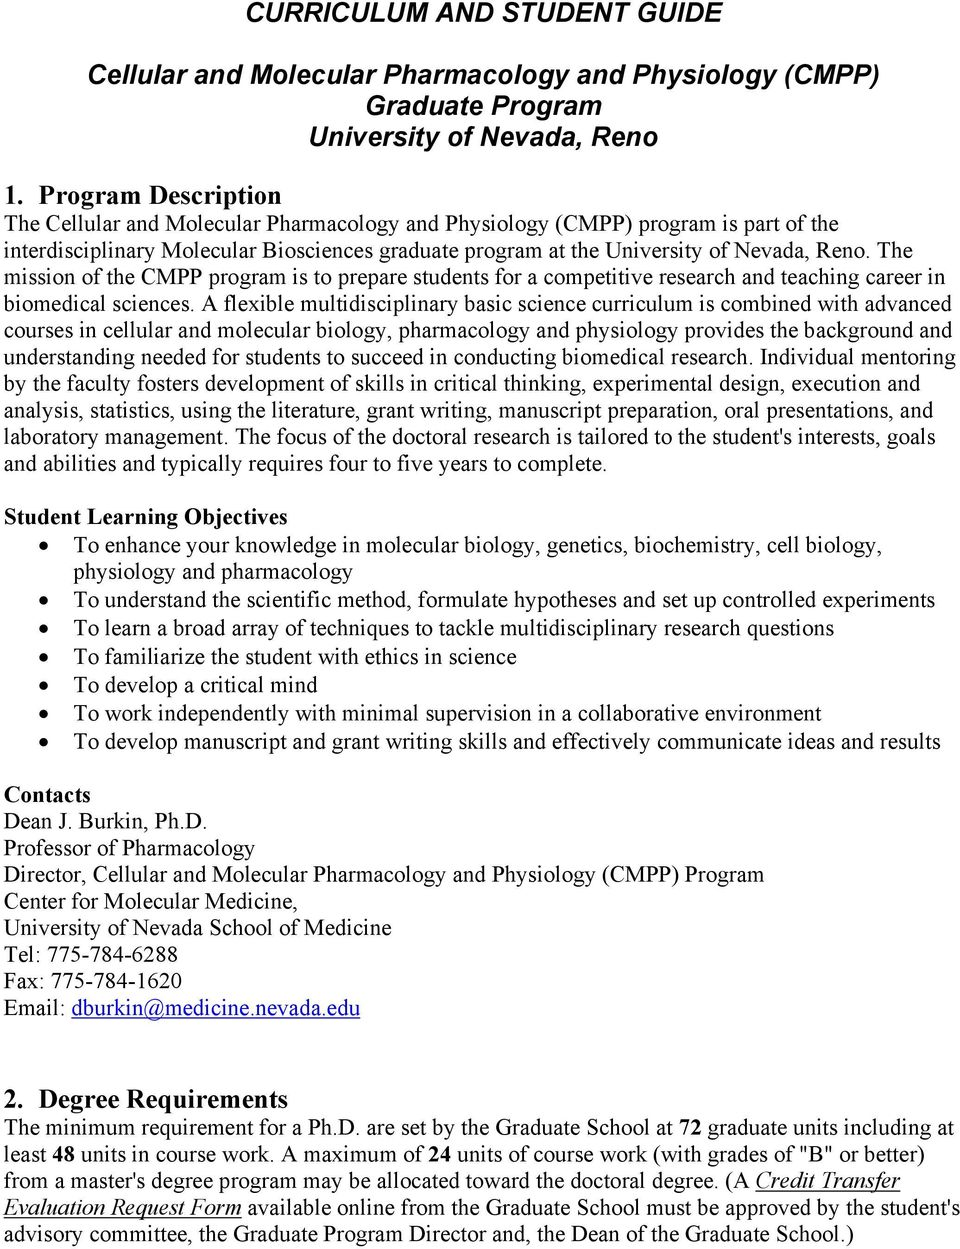 The mission of the CMPP program is to prepare students for a competitive research and teaching career in biomedical sciences.